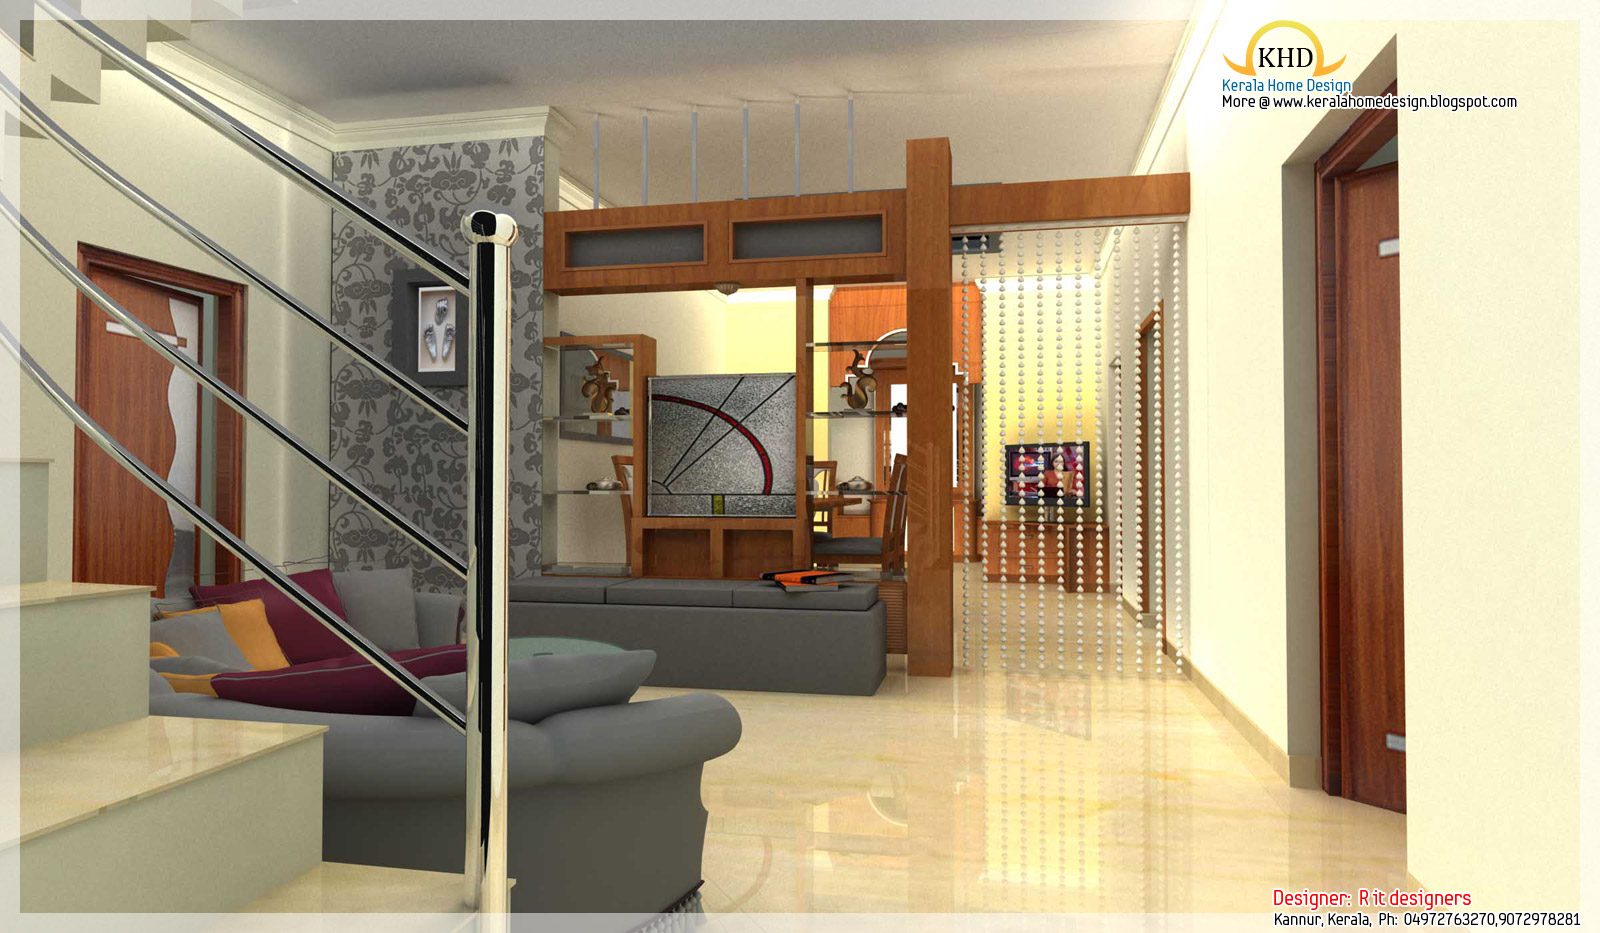 3d interior designs home appliance for Kerala home interior designs photos